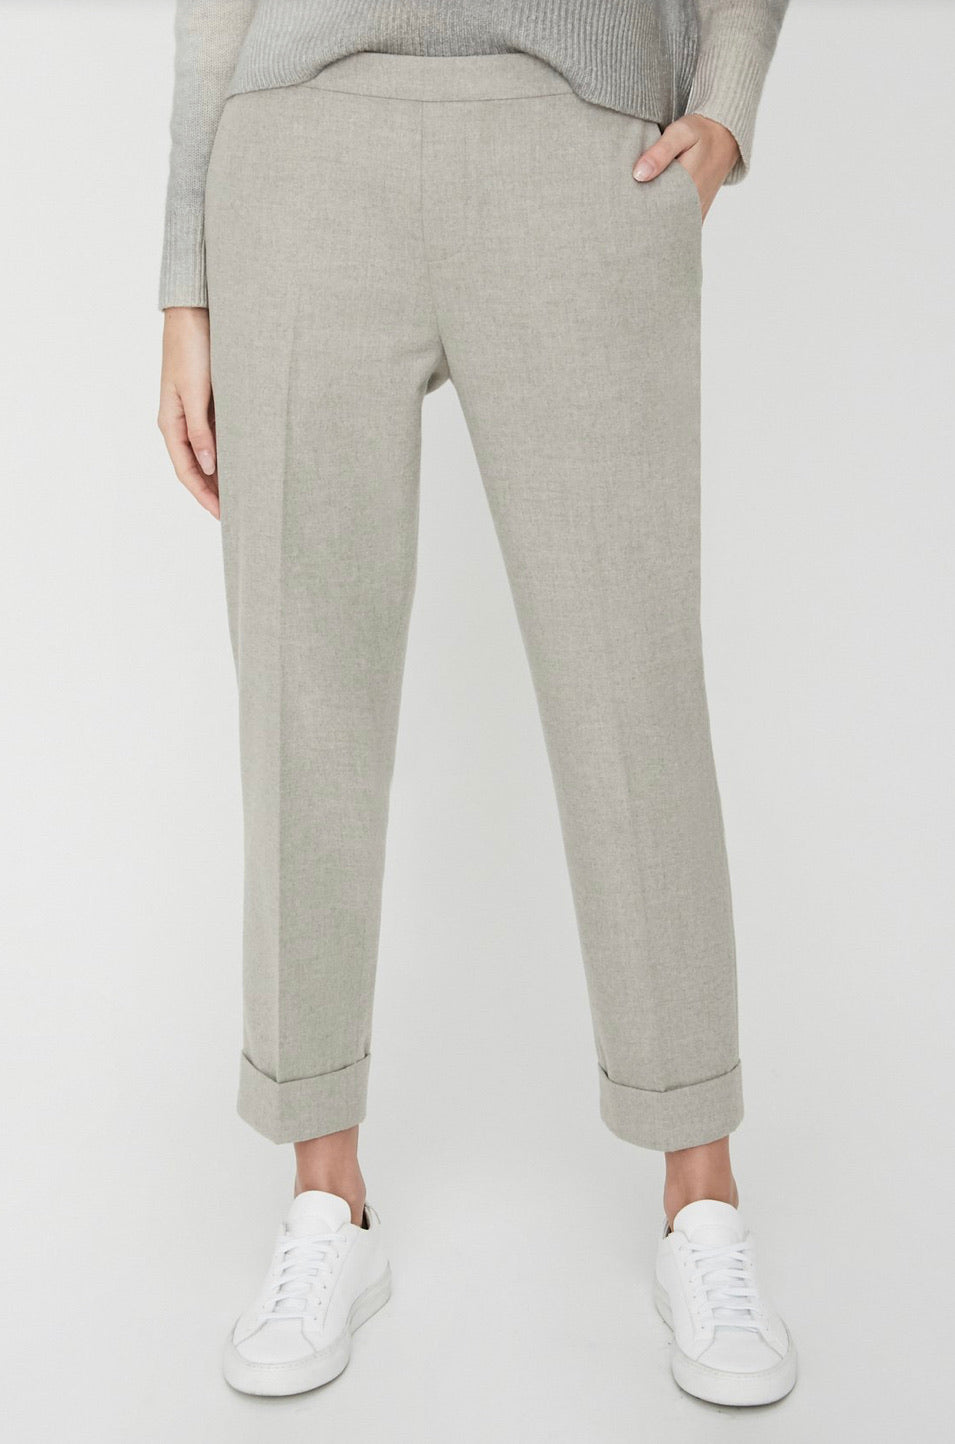 Brochu Walker - Westport Pull-on Pant - Whisper Melange